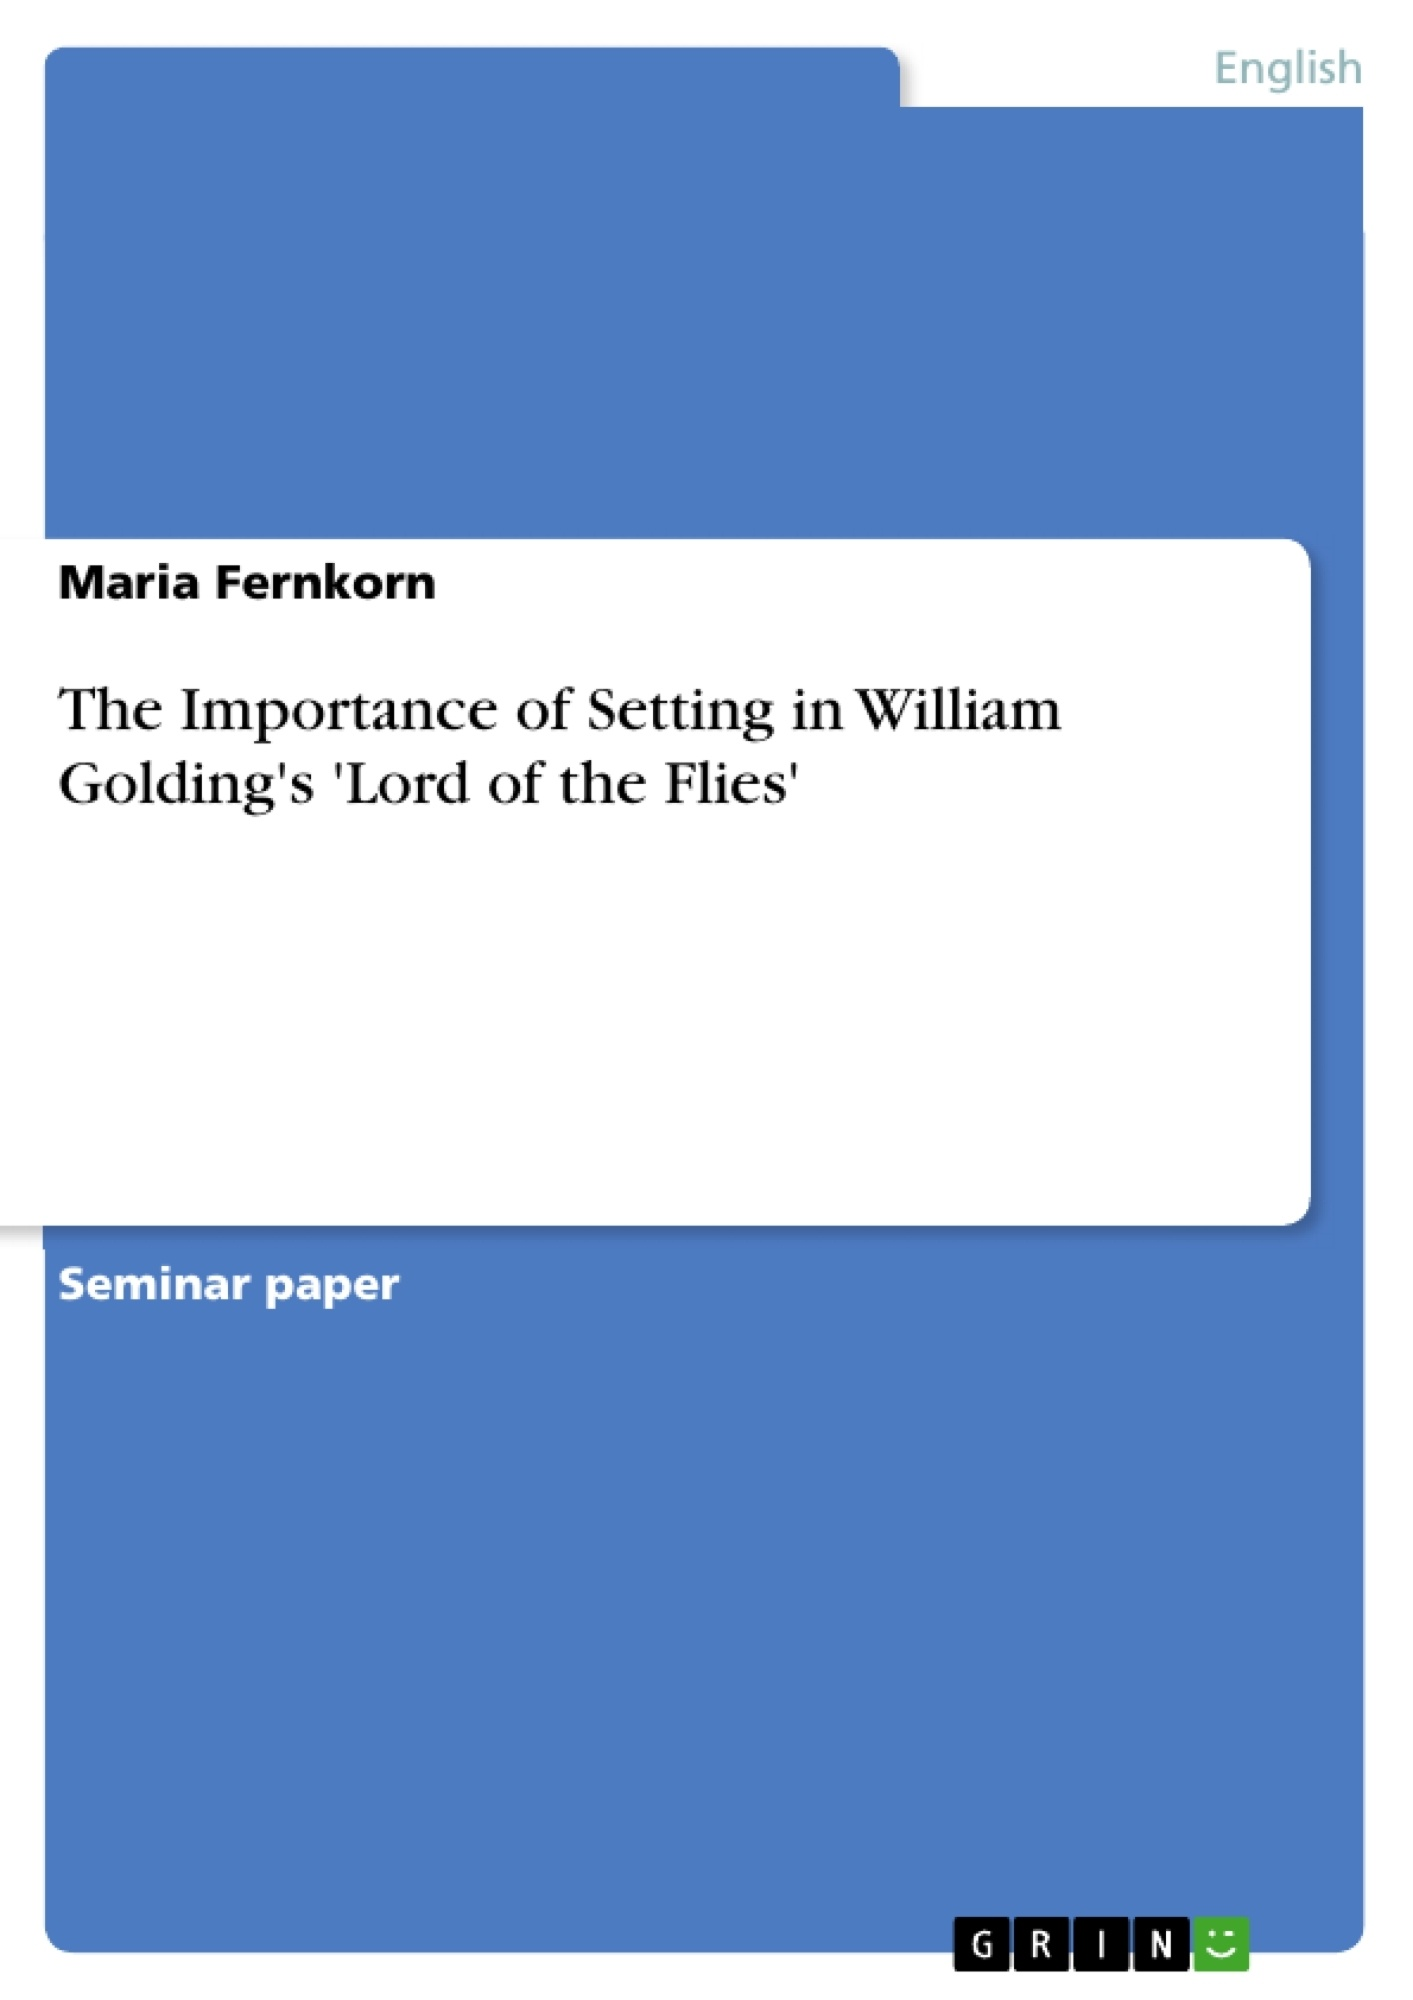 the importance of setting in william golding s lord of the flies upload your own papers earn money and win an iphone 7